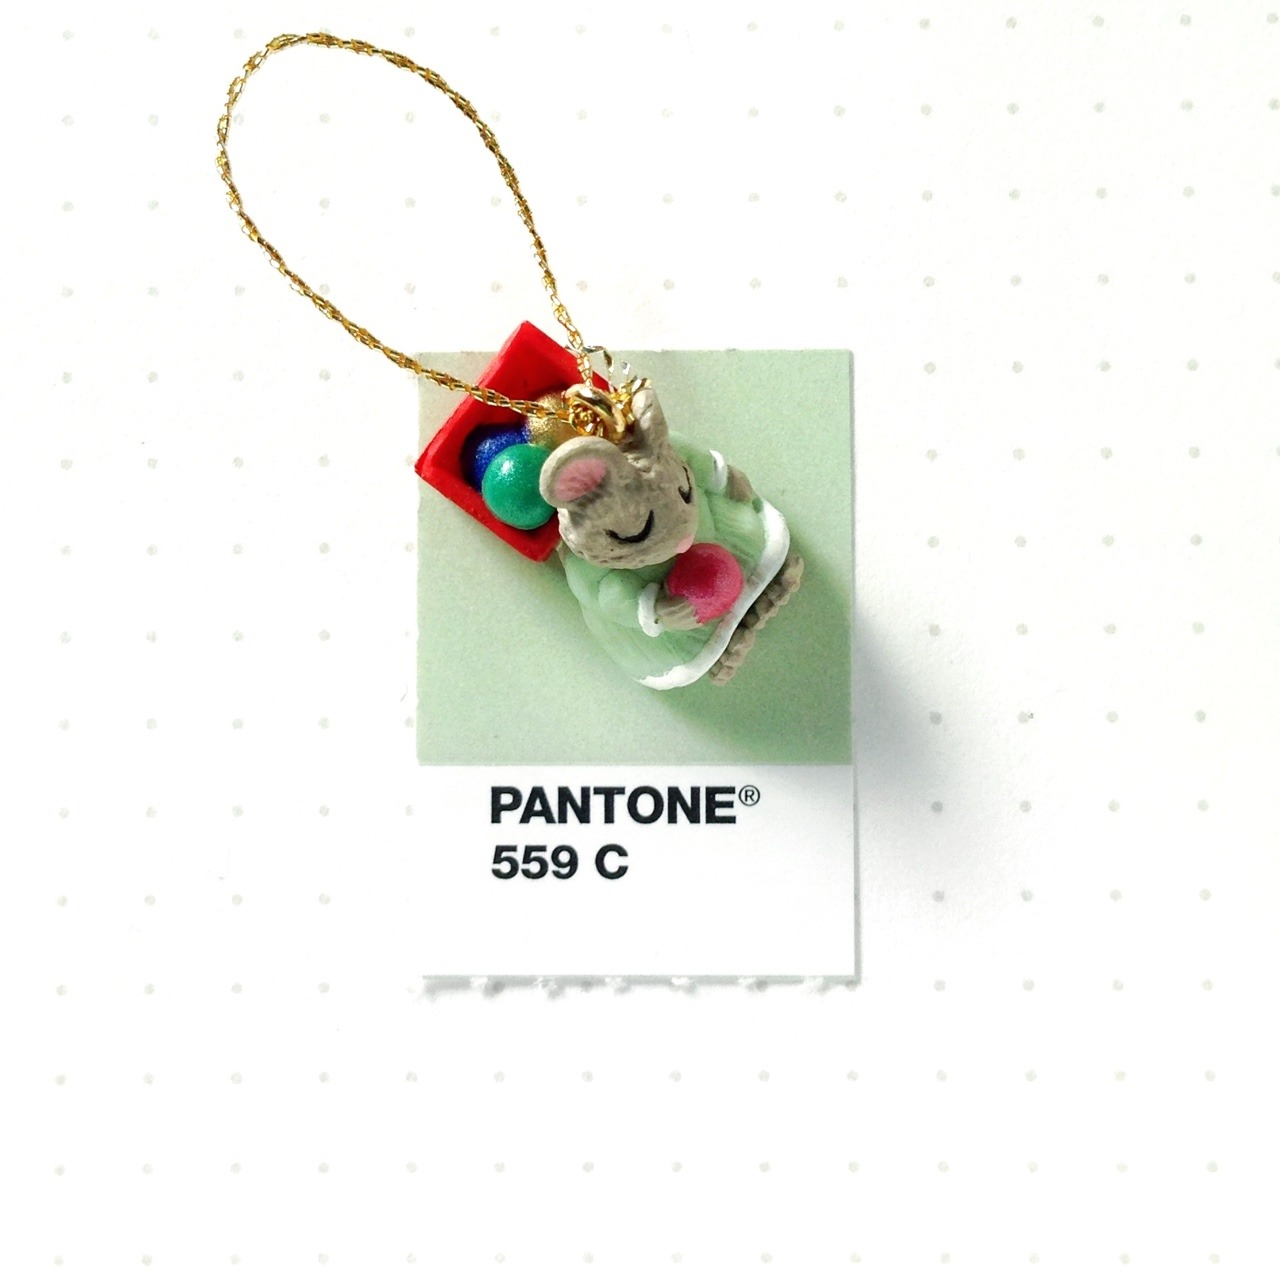 Pantone Christmas Ornaments Tiny Pms Match